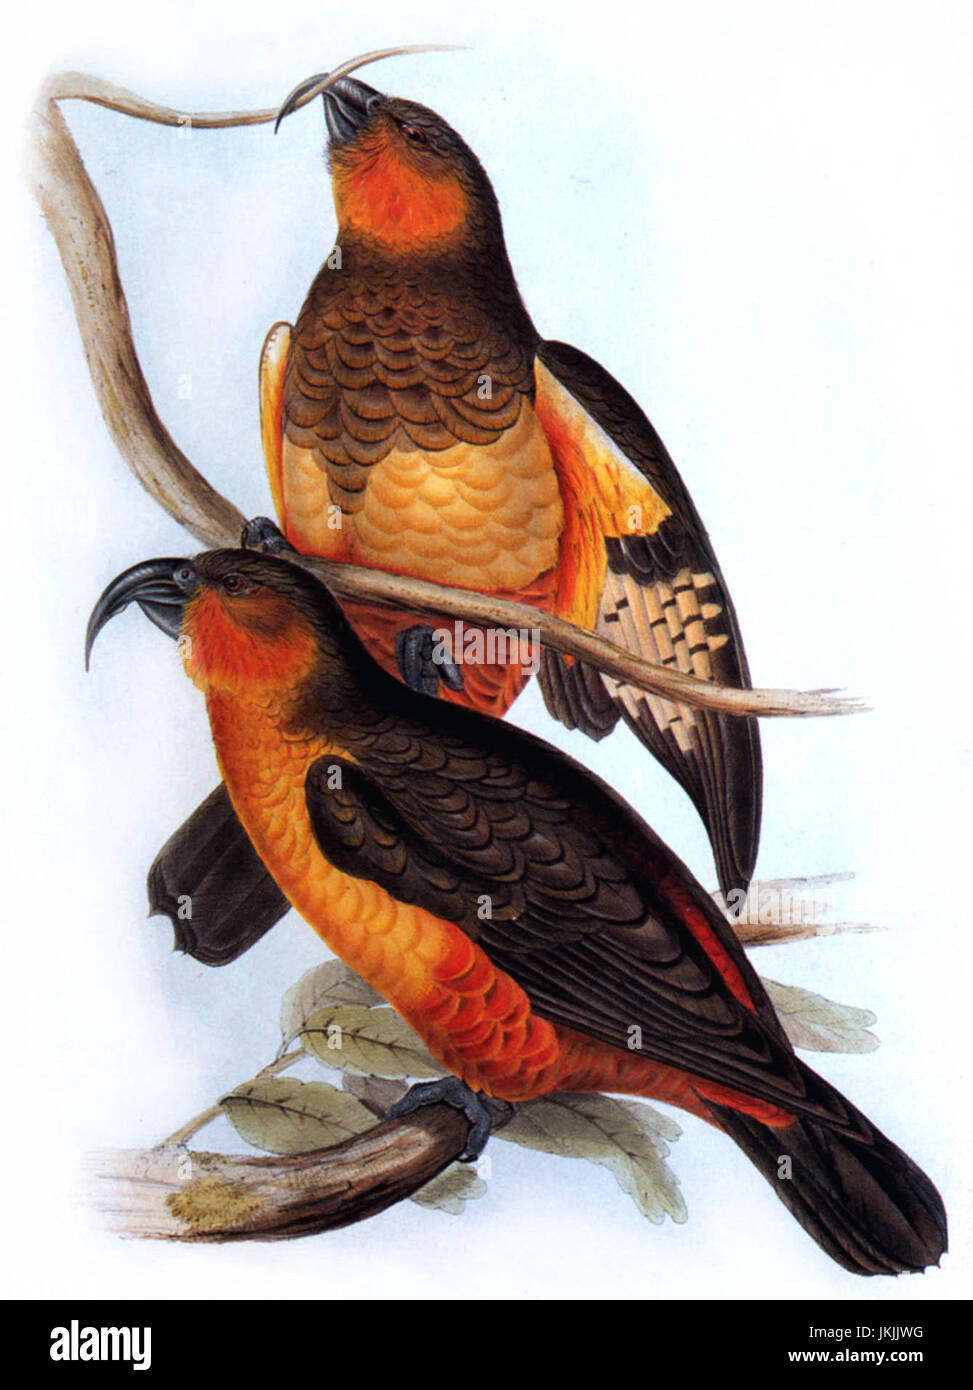 The Norfolk kaka went extinct in the mid-1800s - Stock Image